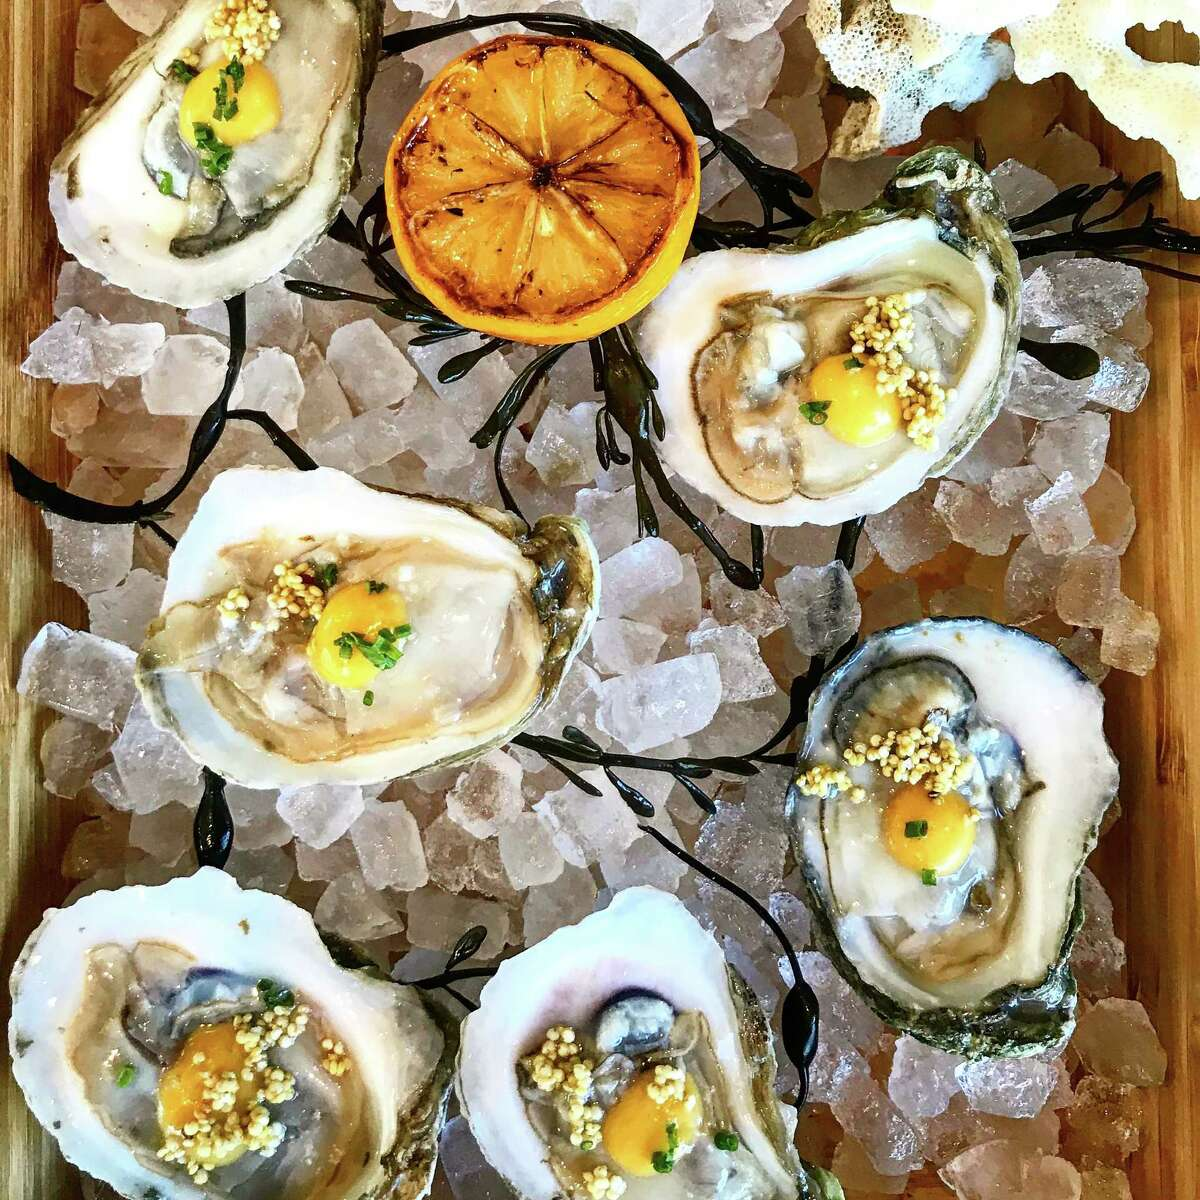 raw oysters with smoky chili mignonette at Alma restaurant in Highland Village.